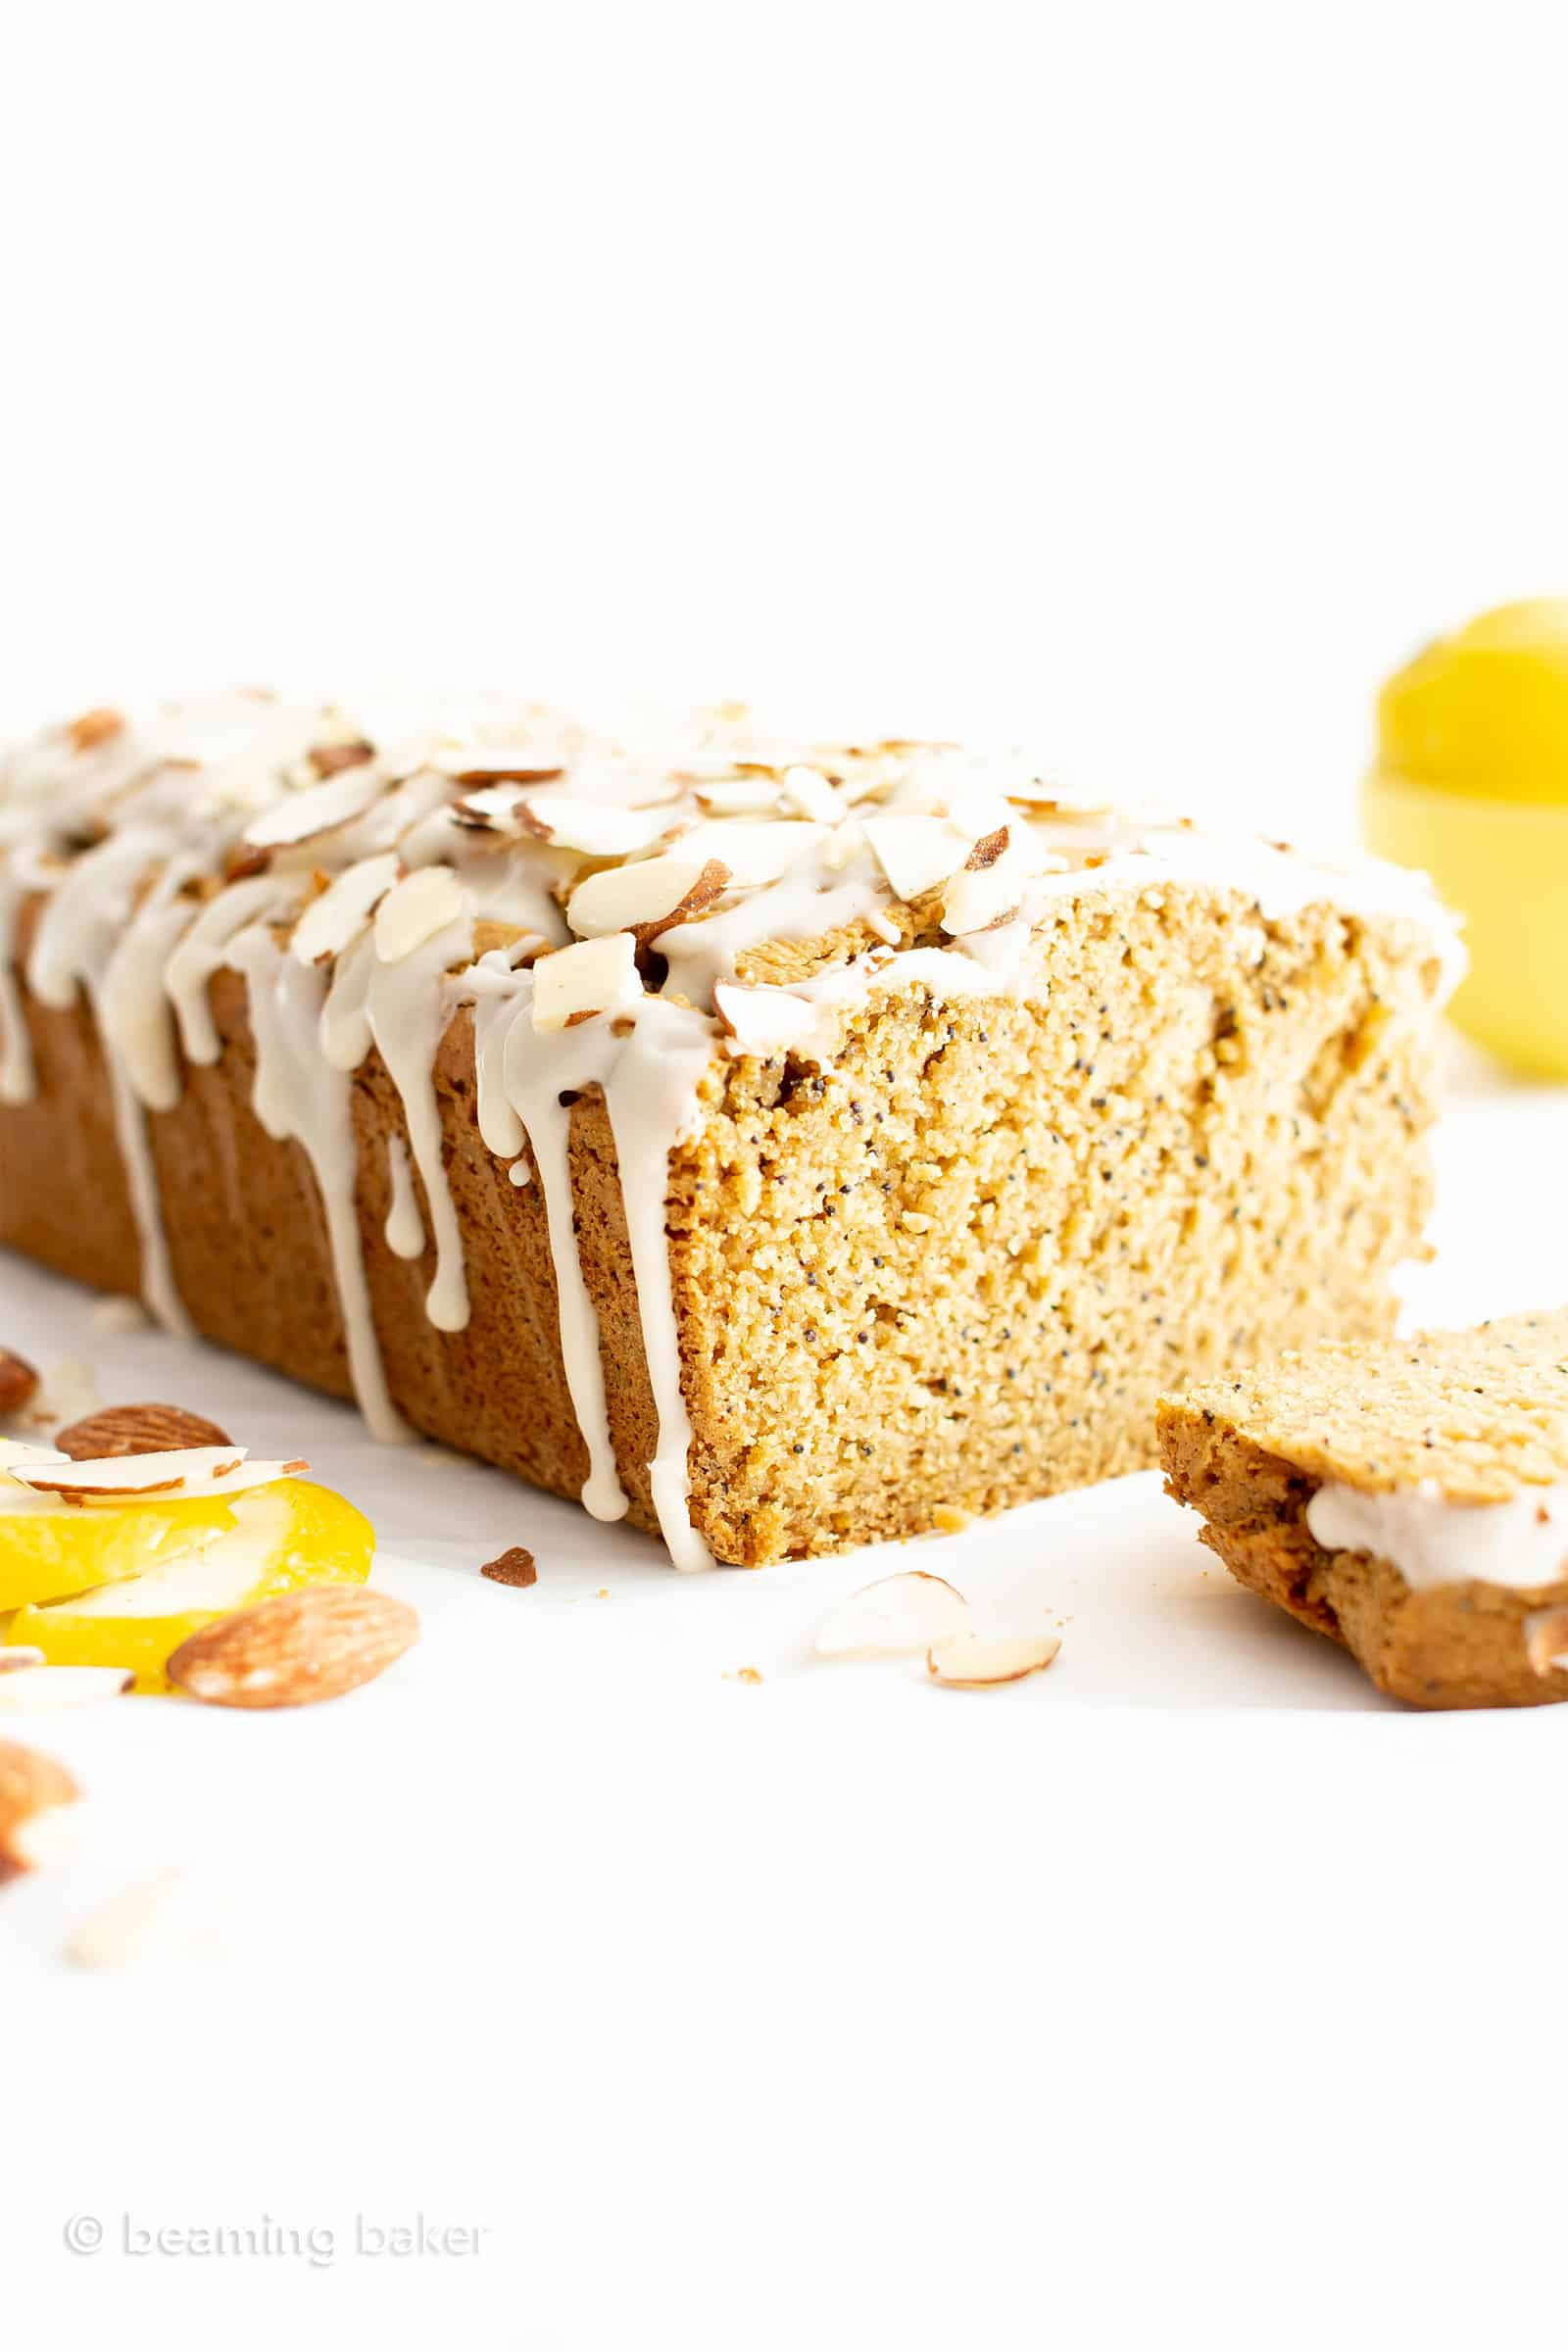 Easy Vegan Lemon Almond Poppy Seed Bread Recipe (Gluten-Free, Healthy): this easy gluten free lemon almond poppy seed bread recipe is moist, fluffy and bursting with lemon flavor! It's the best vegan lemon poppy seed bread – gluten-free, dairy-free, healthy! #Vegan #GlutenFree #DairyFree #Lemon | Recipe at BeamingBaker.com